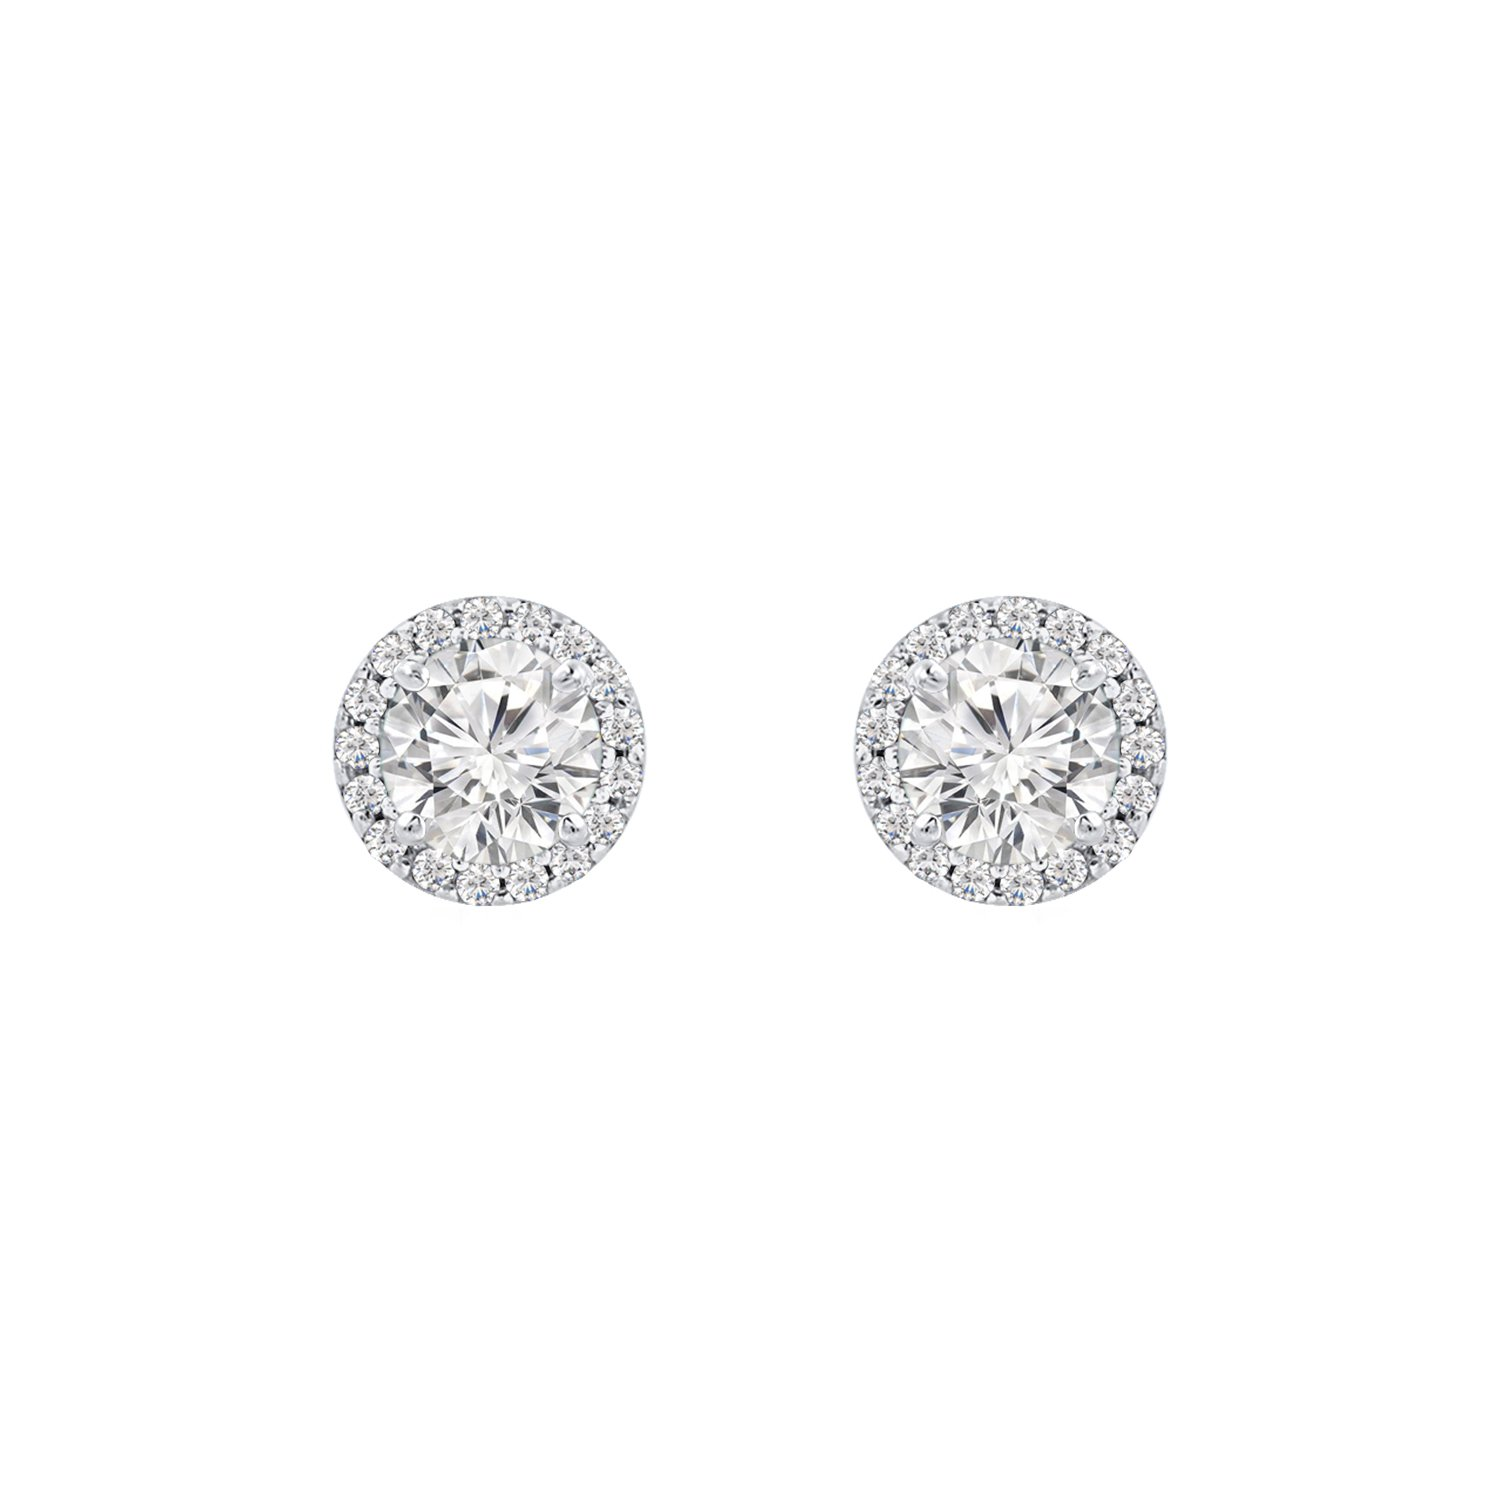 14k White Gold Over 1.11 ct 5mm Cubic Zirconia Halo Solitaire CZ Stud Earrings Best Gift Ideas for Women Girls Ladies